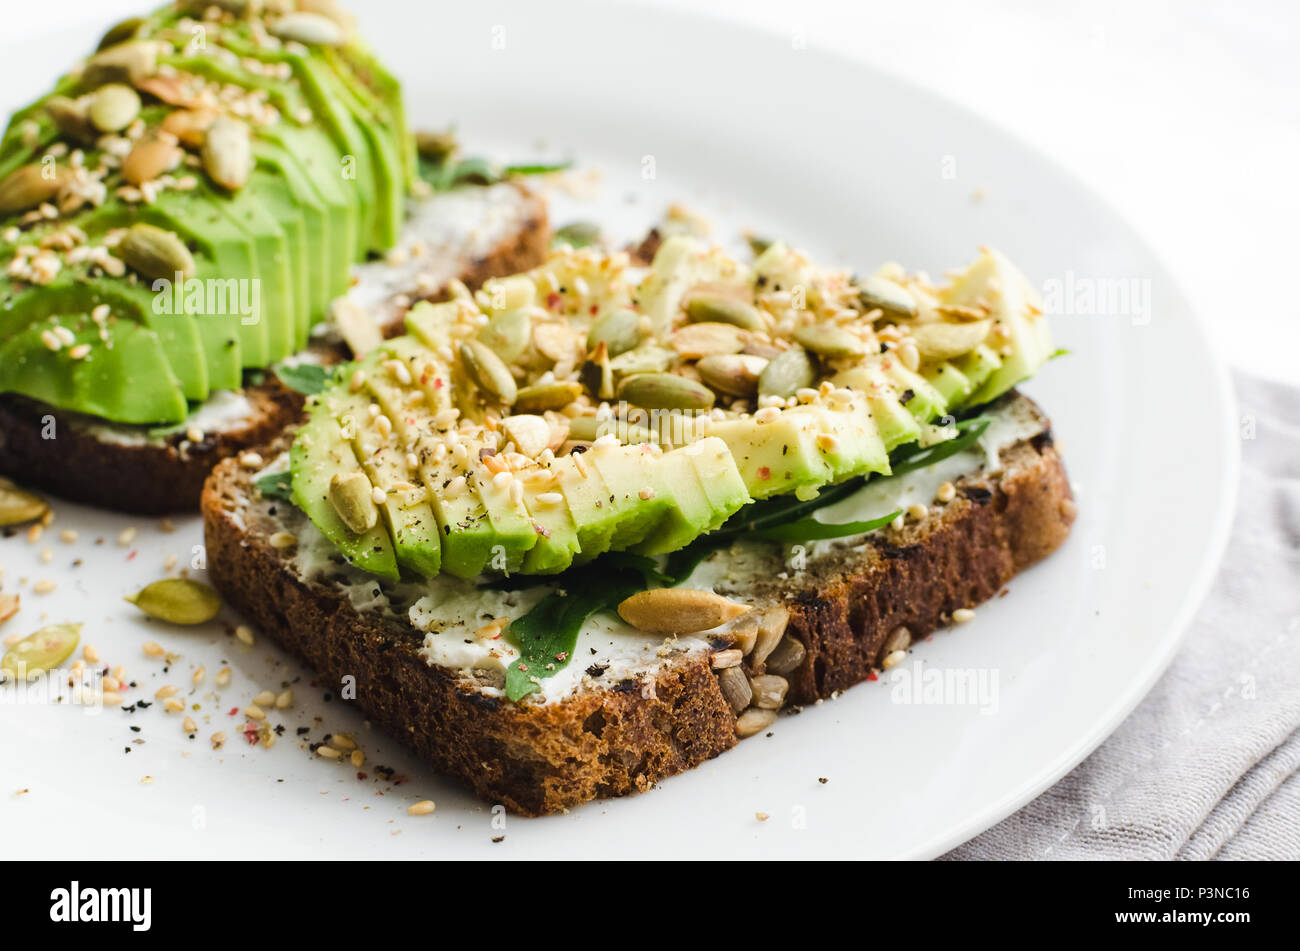 Healthy avocado toasts for breakfast or lunch with rye bread, sliced avocado, arugula, pumpkin and sesame seeds, salt and pepper. Vegetarian sandwiche - Stock Image